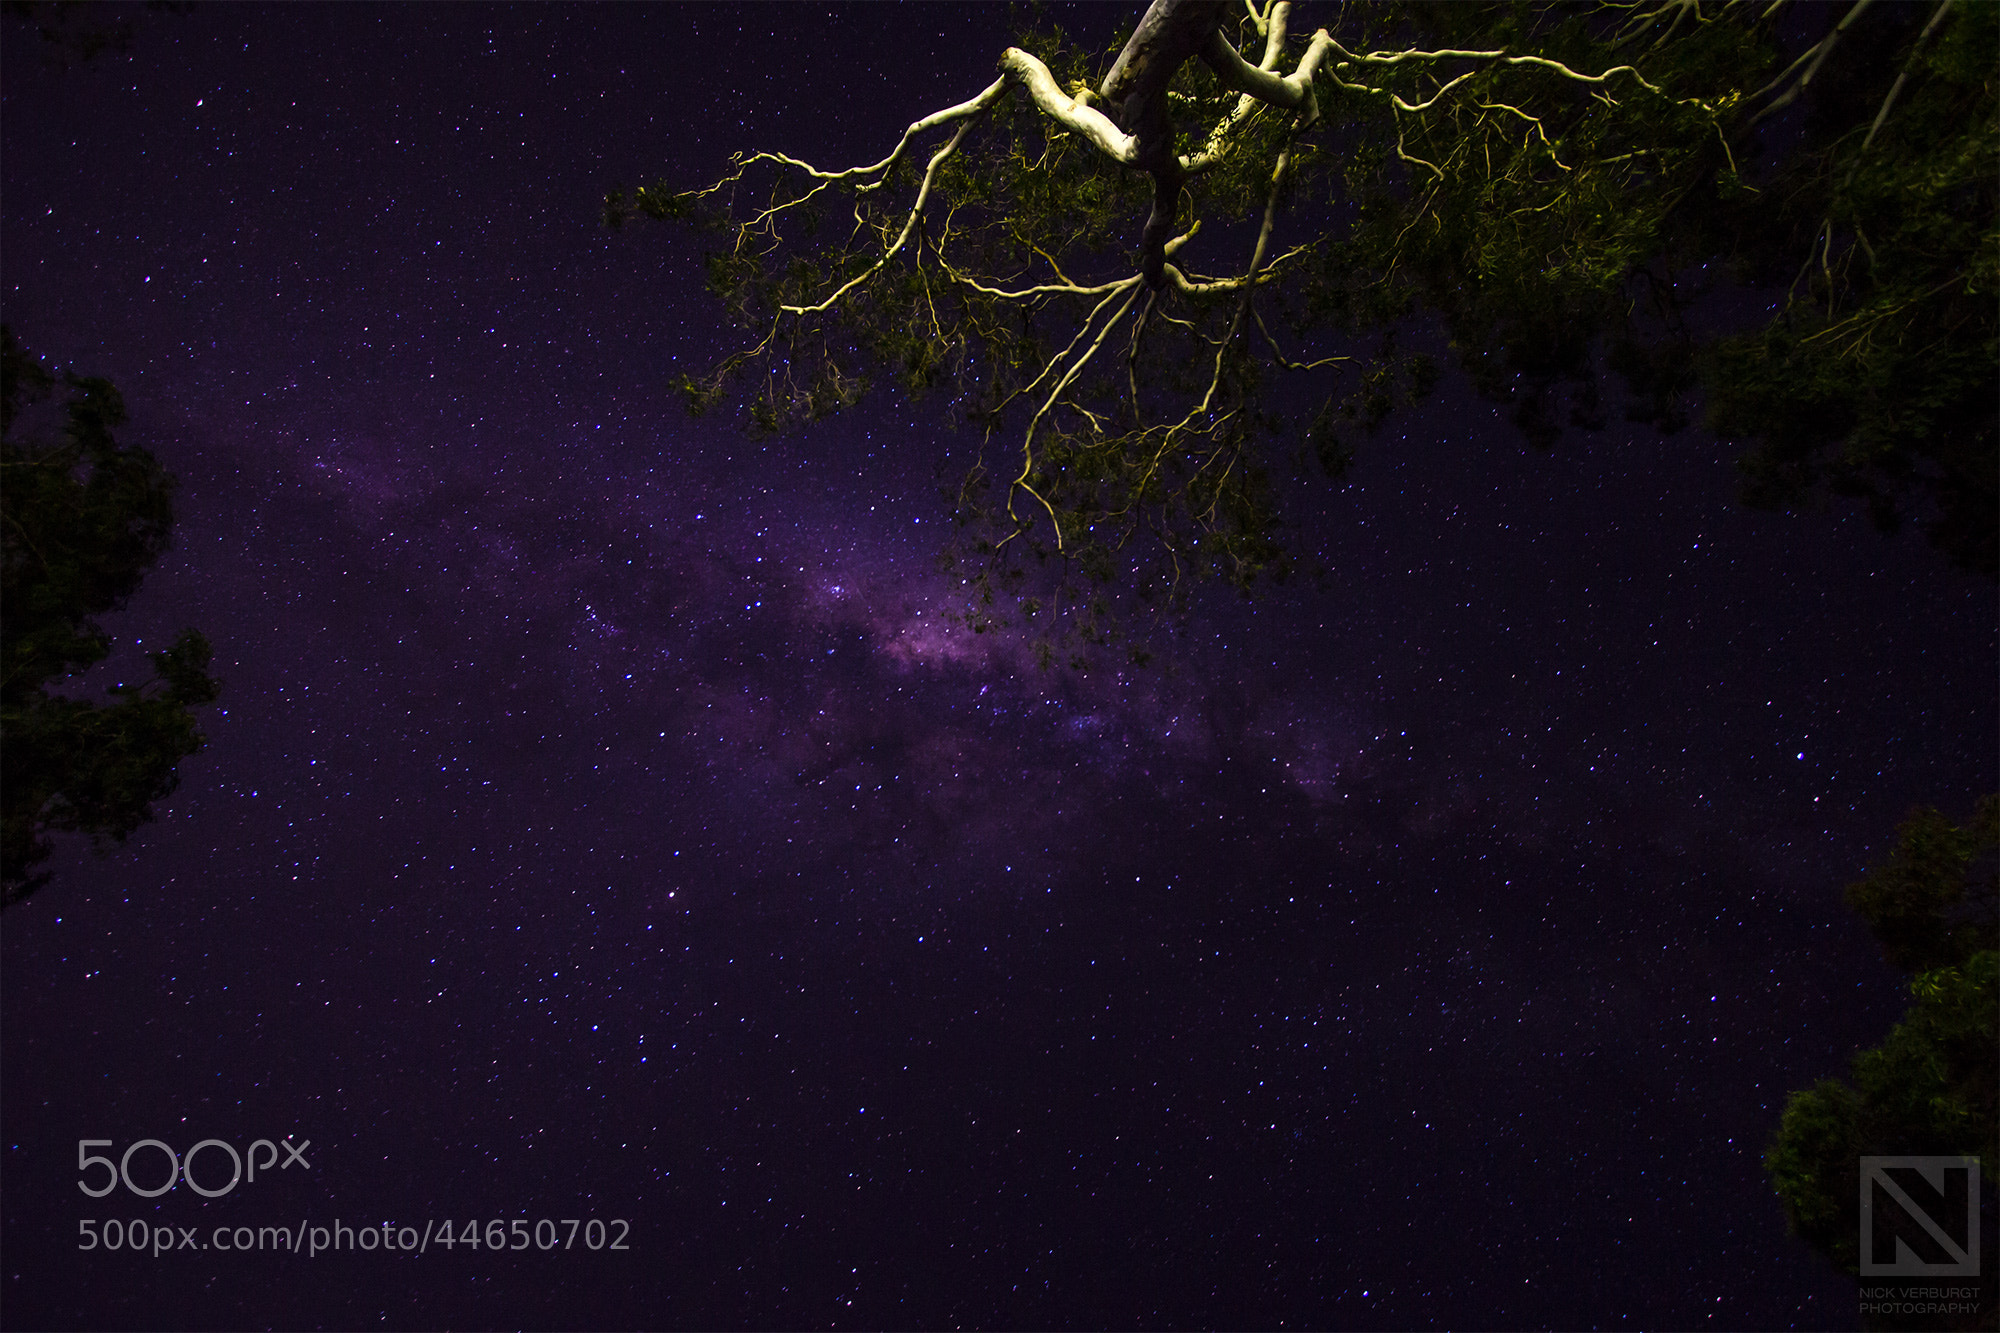 Photograph Night Sky @ Noosa by Nick Verburgt on 500px